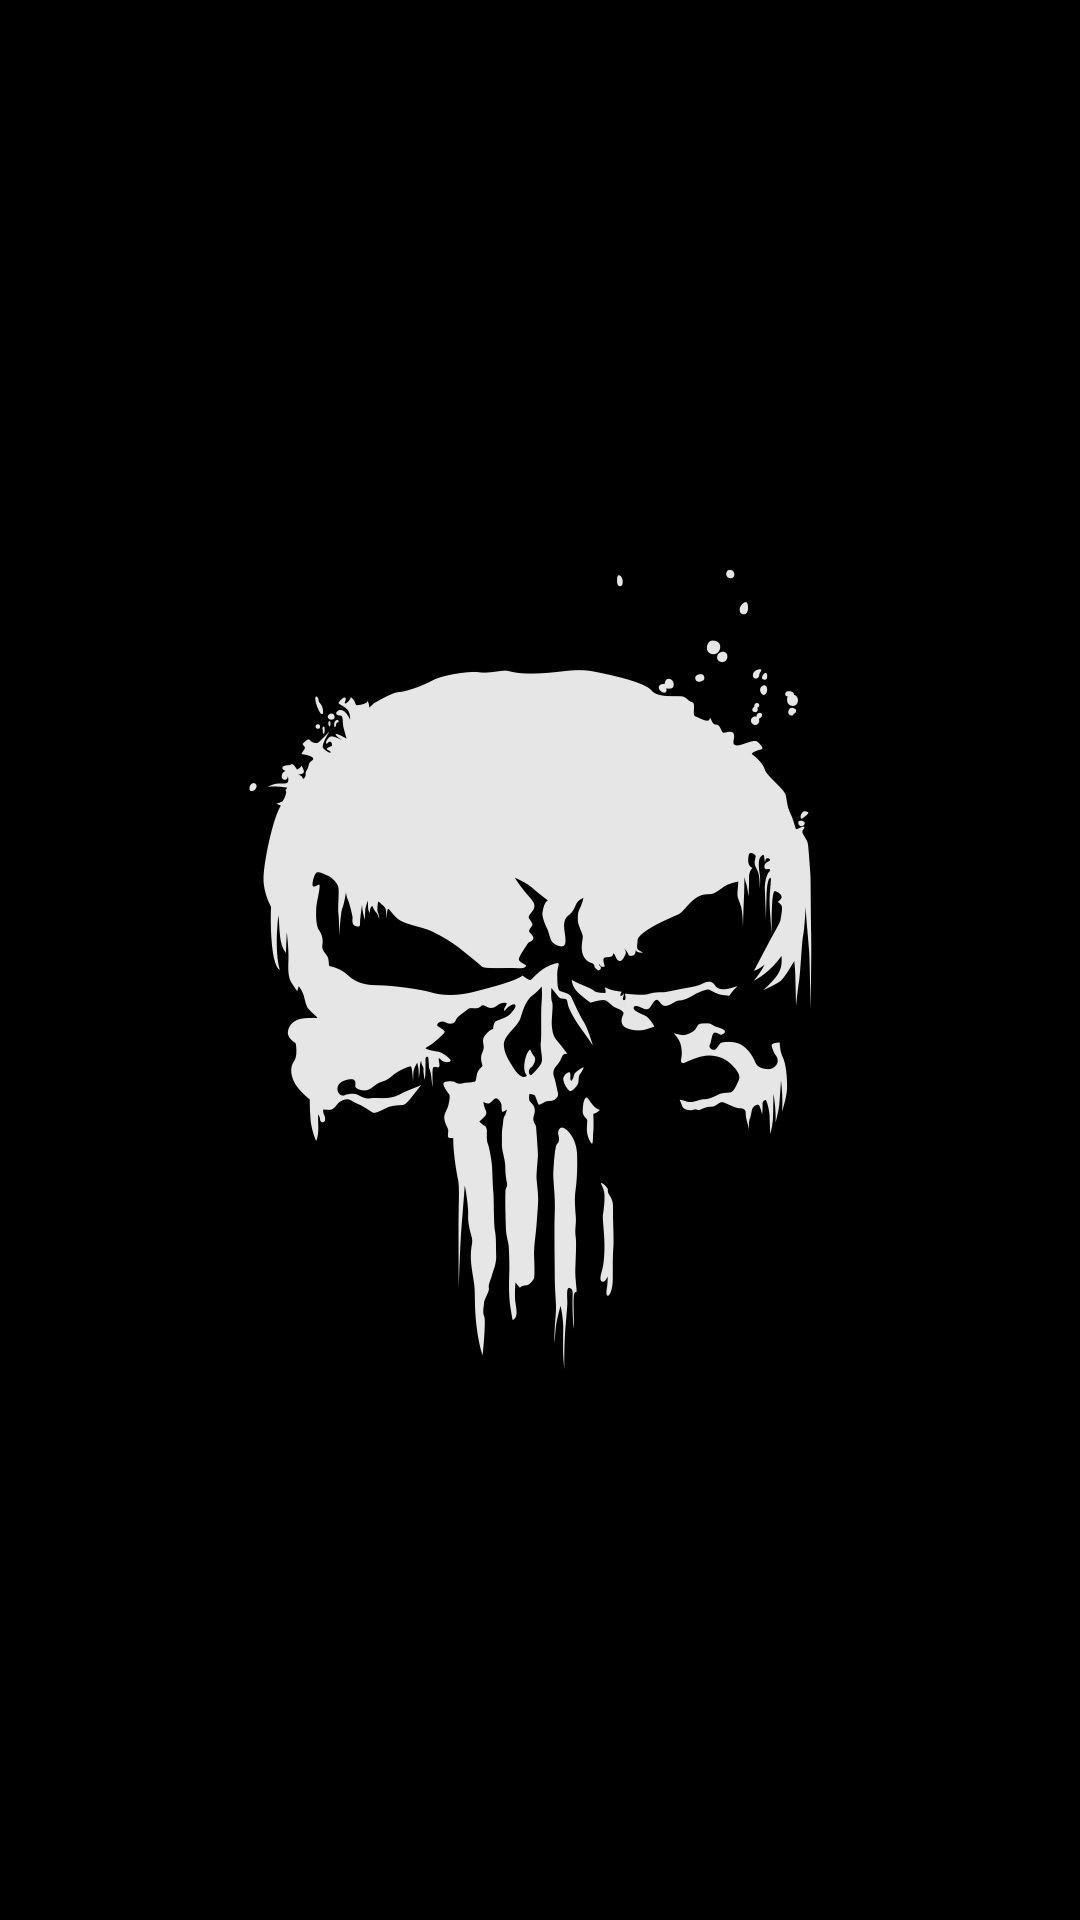 Unique The Punisher Wallpaper Iphone In 2020 Superhero Wallpaper Punisher Artwork Punisher Comics